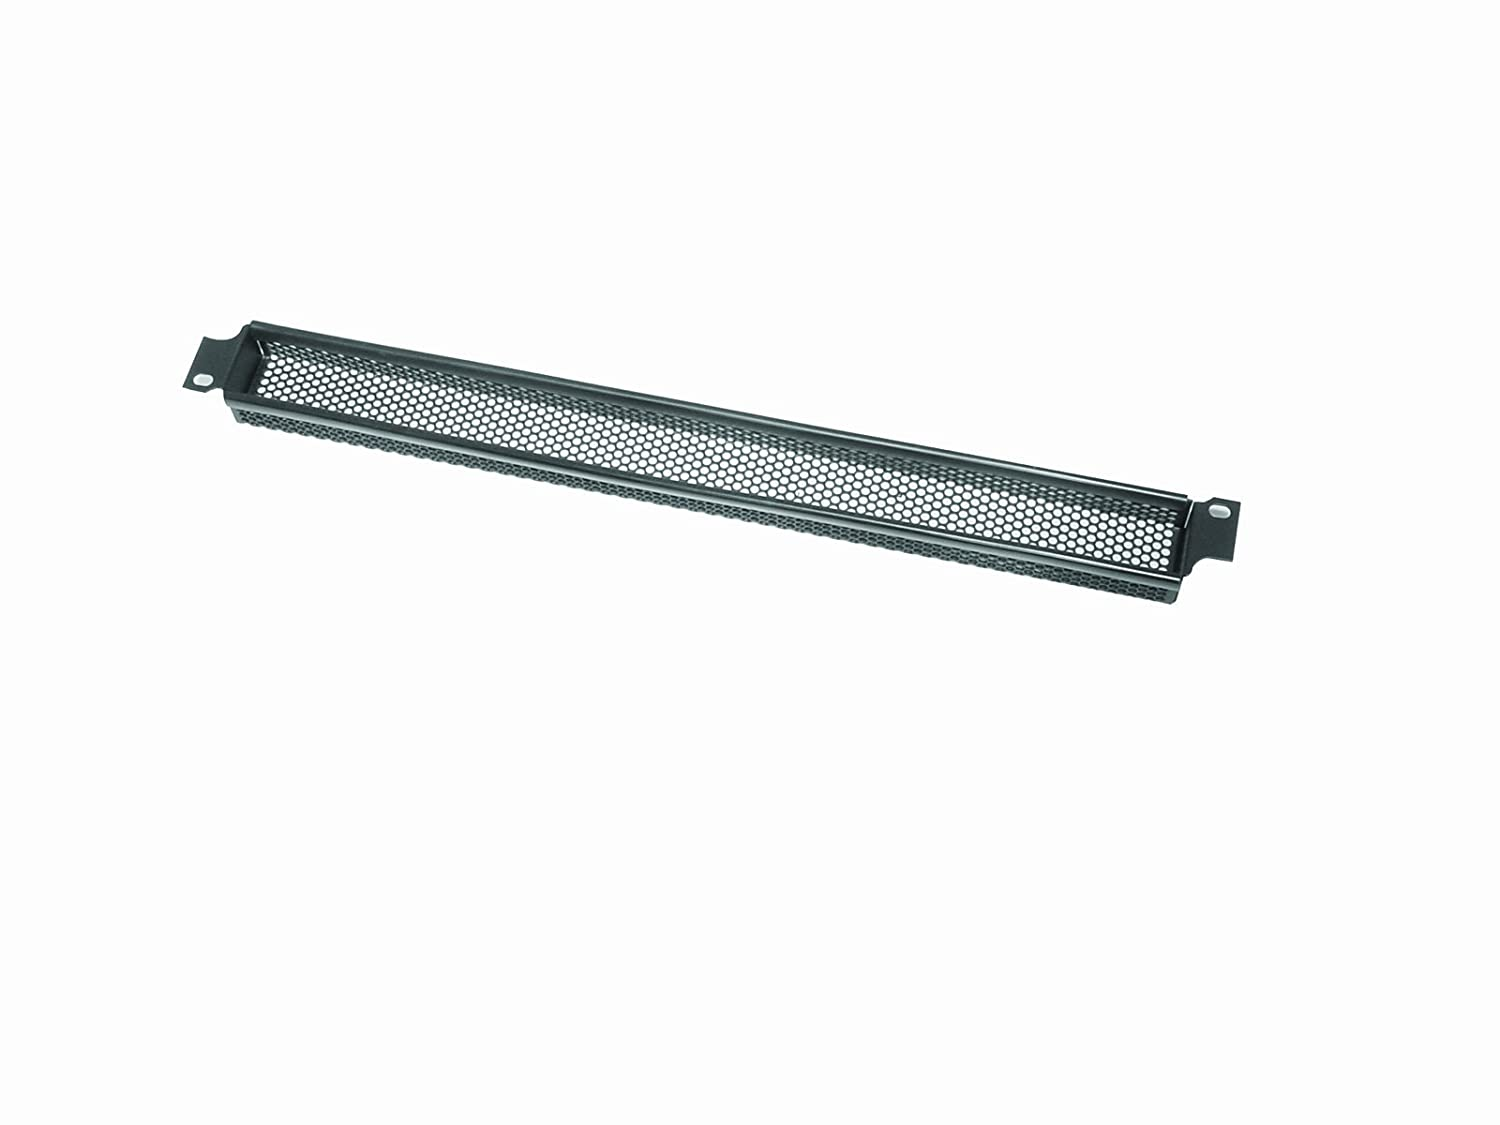 Odyssey ARSCLP01 1 Space Large Perforated Security Cover Rack Accessory Odyssey Innovative Designs